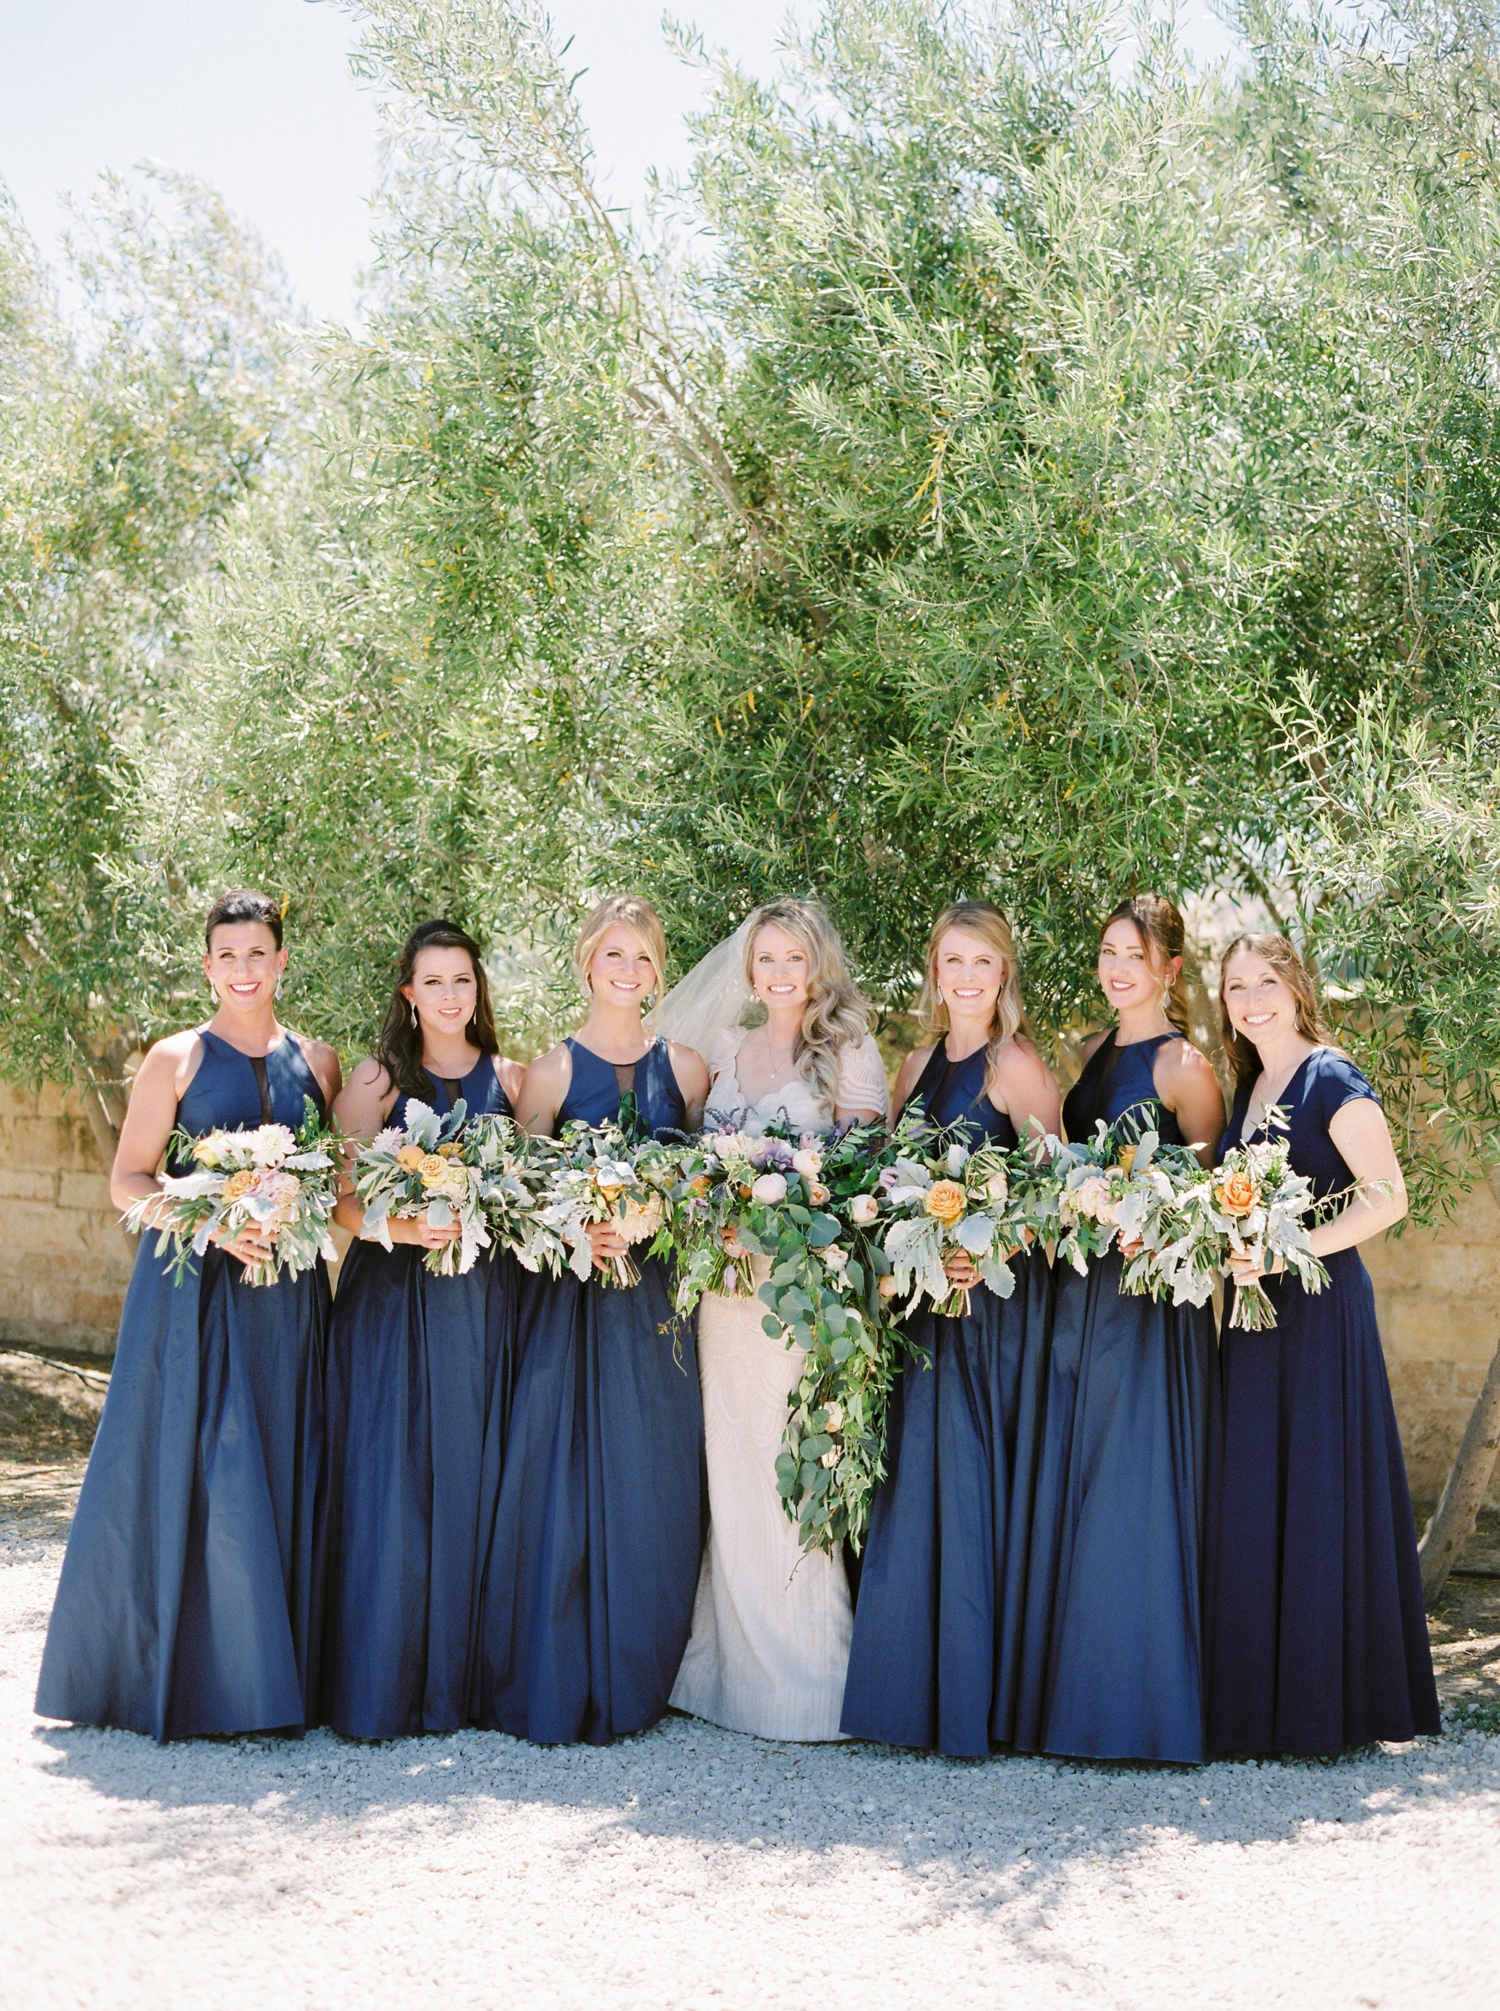 Sunstone Winery and Villa | California Wedding Photographers | Santa Barbara Wedding Photography | Santa Ynez Wedding | Justine Milton Photographer | Fine Art Film | Wedding Party